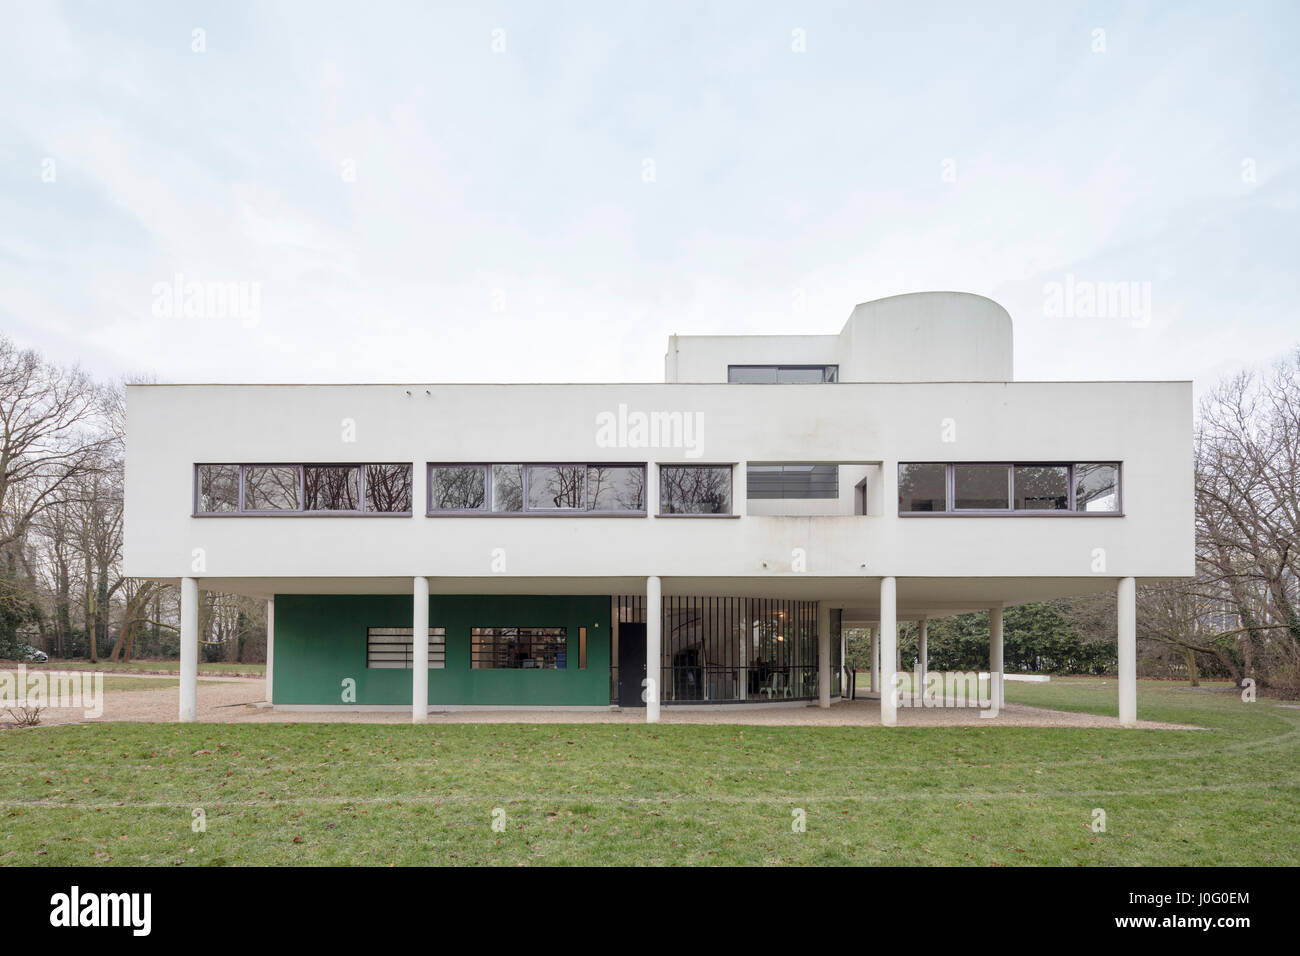 Villa Savoye at Poissy, France, modernist architectural icon of Le ...